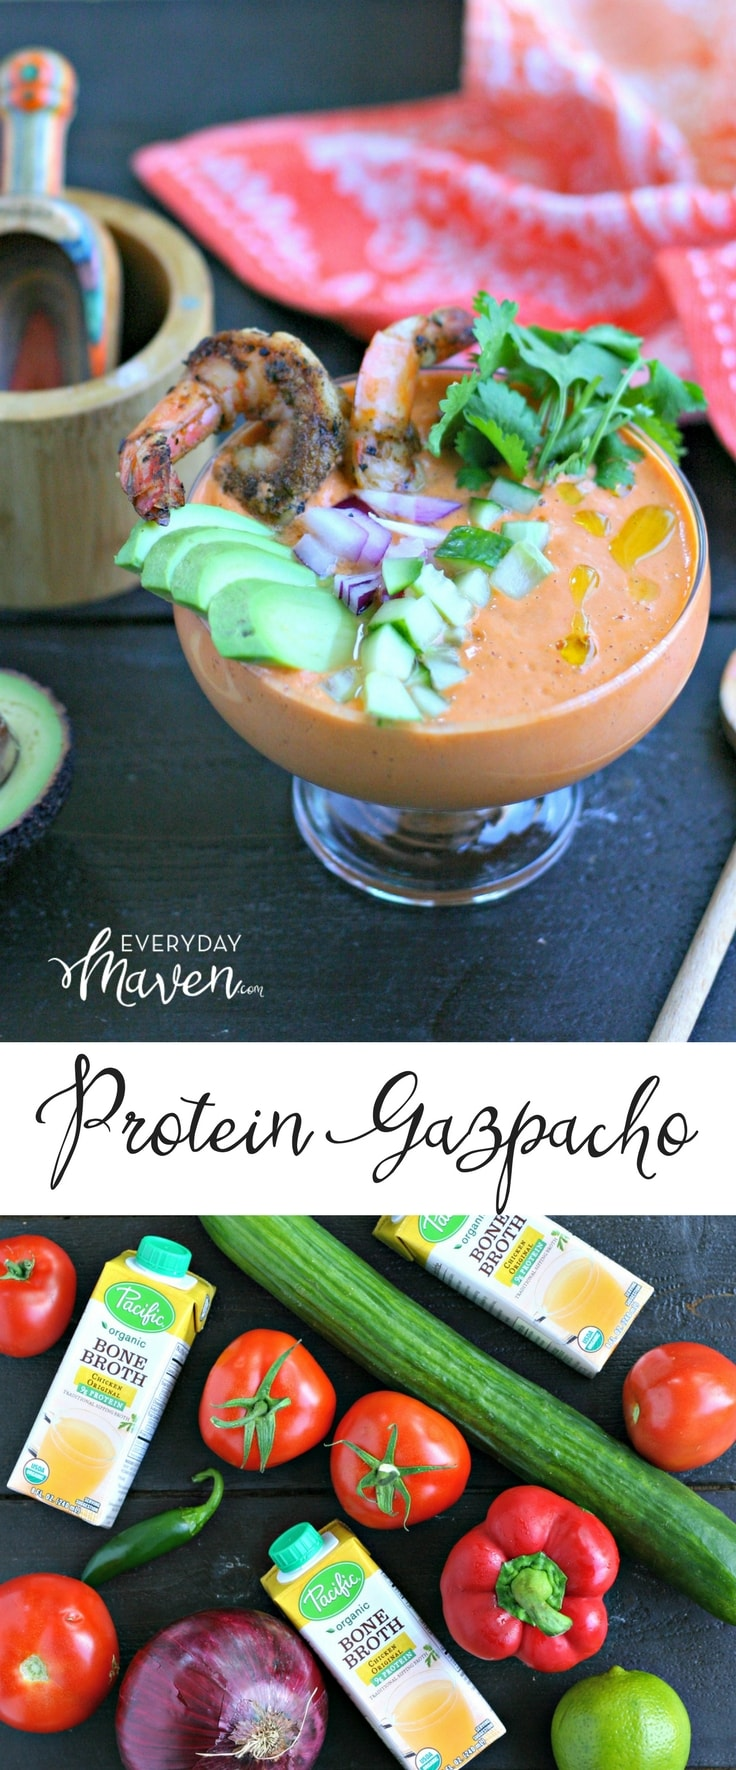 This Bone Broth Gazpacho Recipe has a boost of Bone Broth protein and is made with ripe summer vegetables in minutes! Naturally low carb and gluten free!